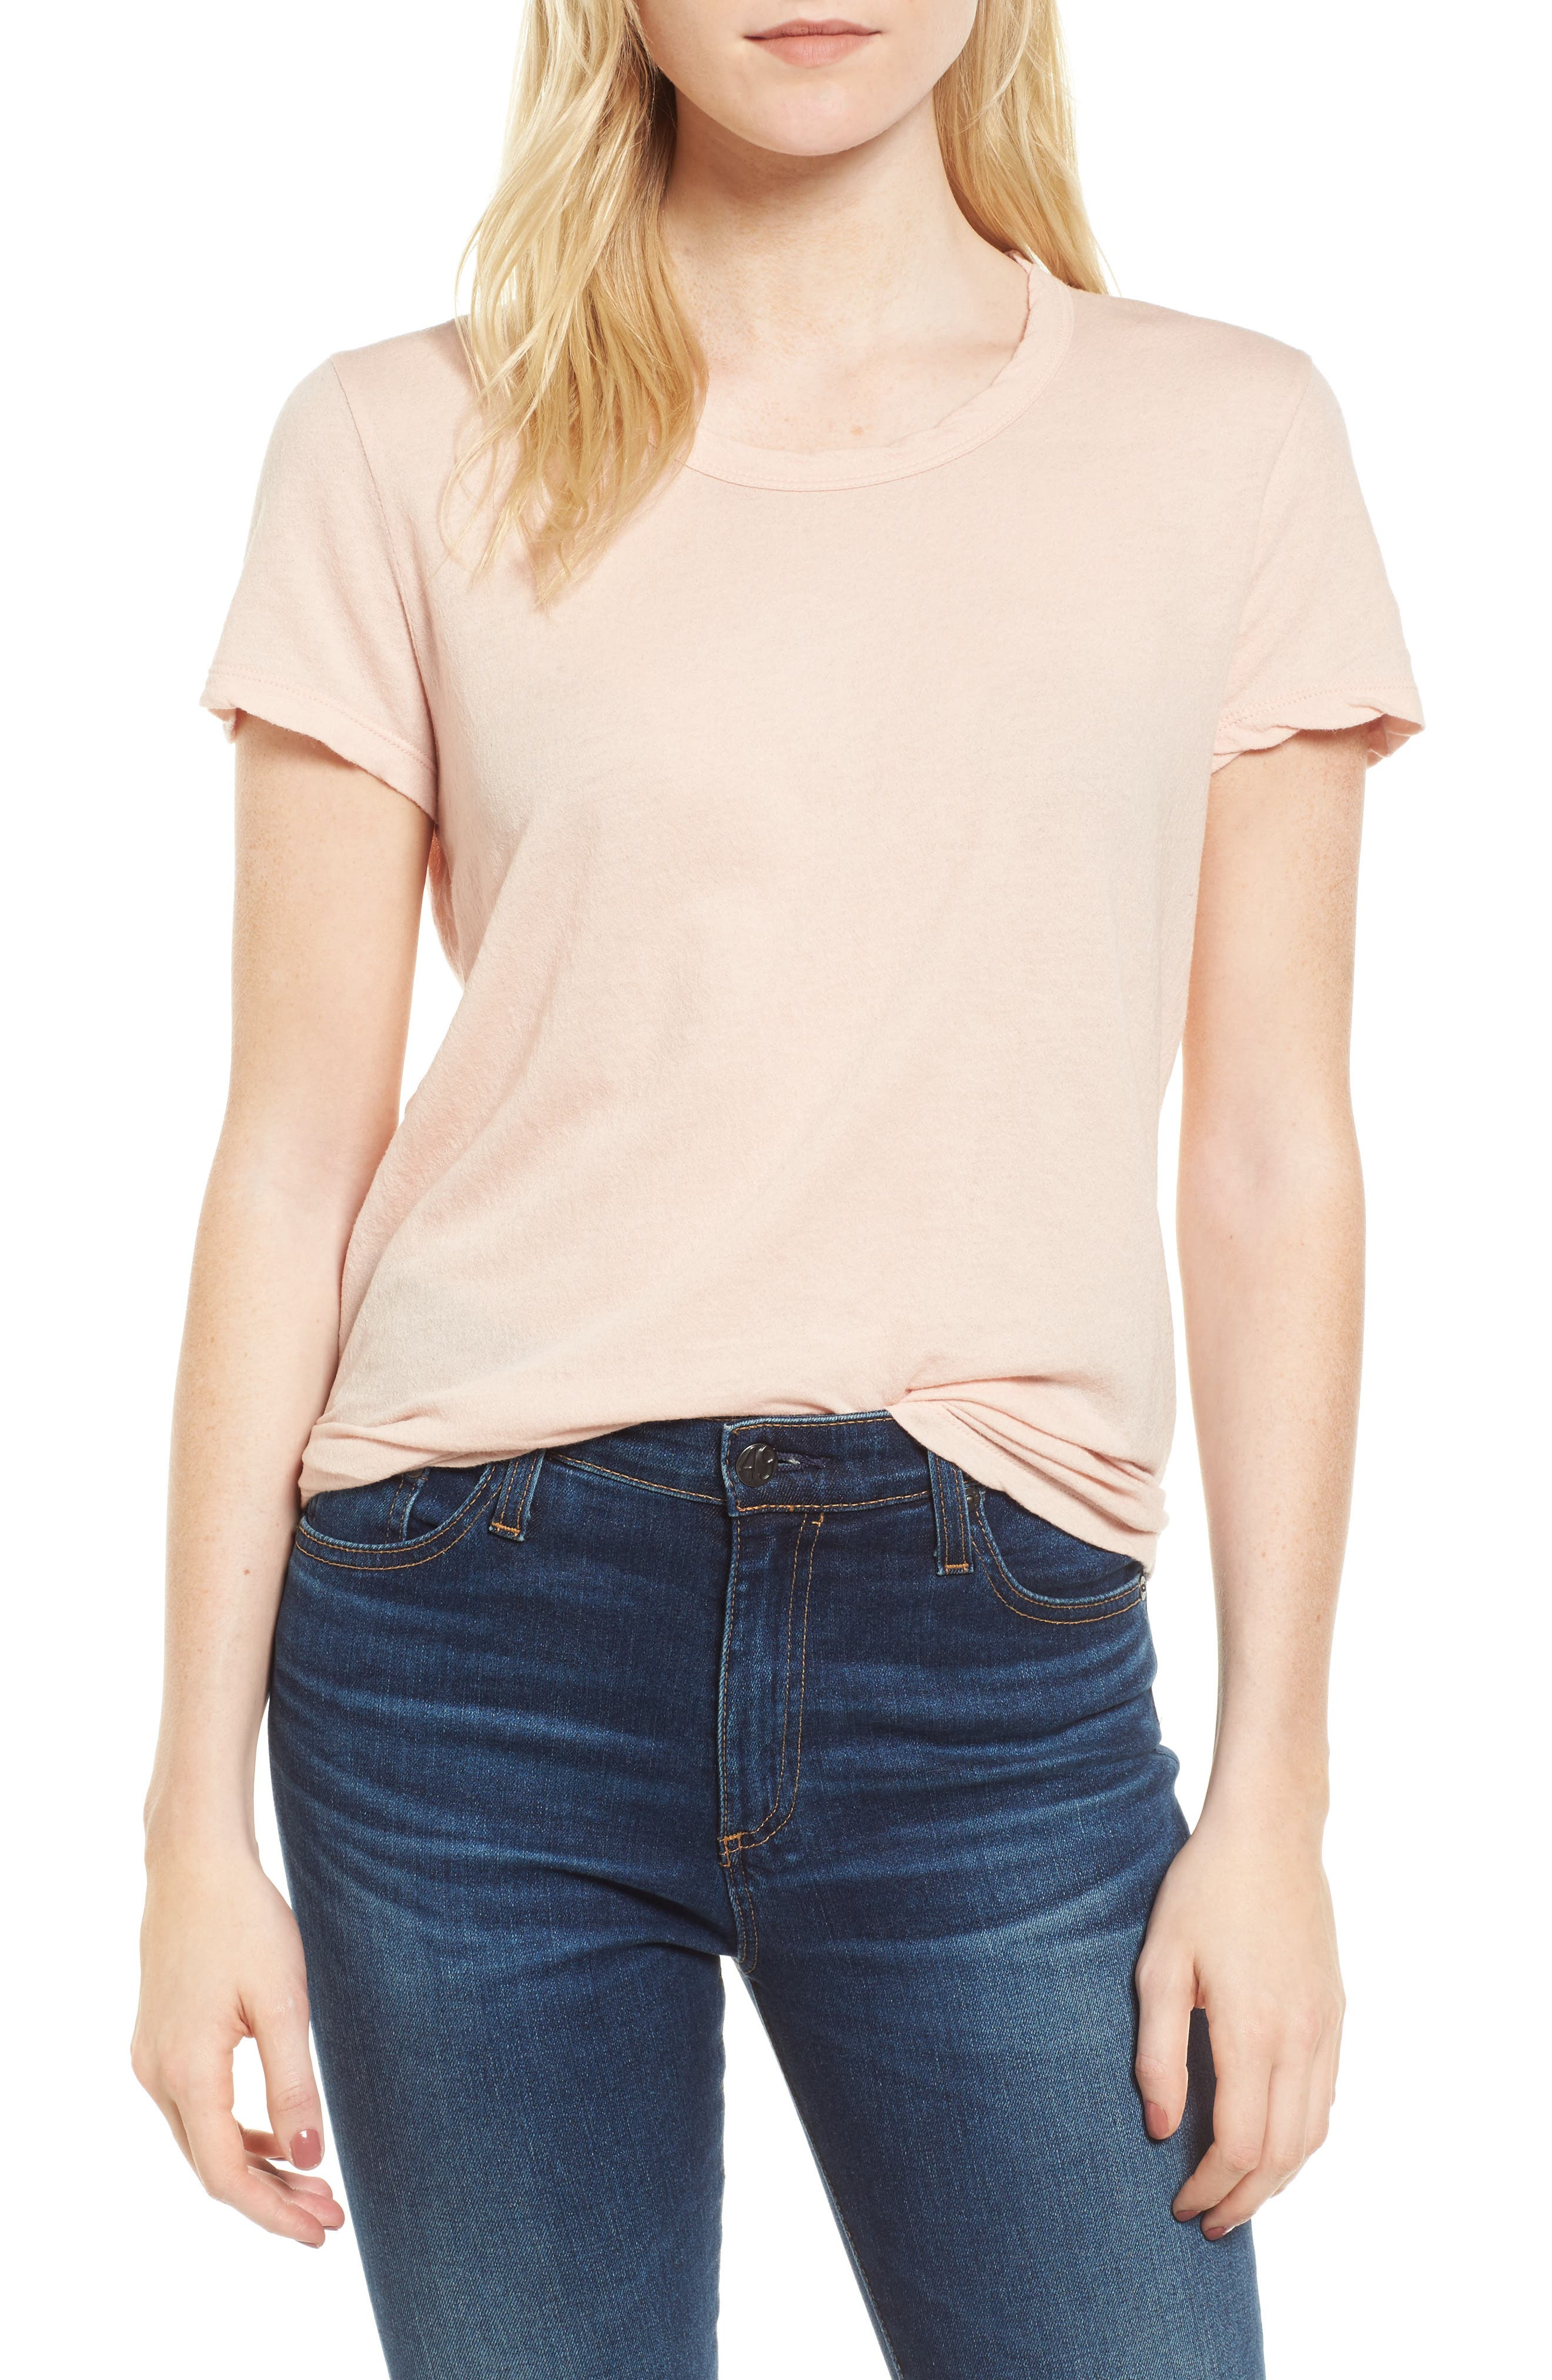 James Perse Crepe Jersey Tee